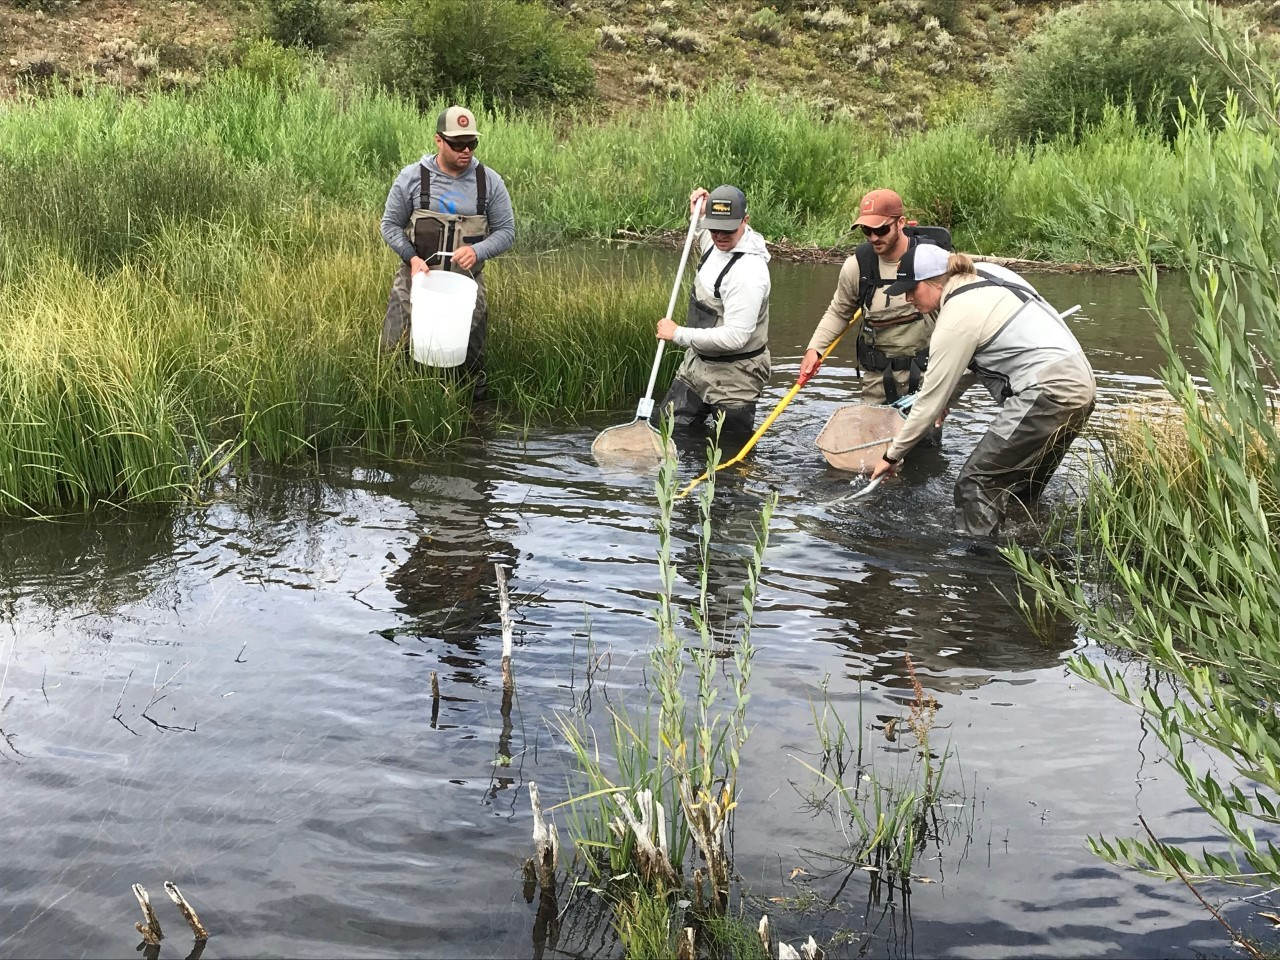 UTAH STATE UNIVERSITY BHA HELPS WITH INVASIVE SPECIES REMOVAL AND RESEARCH